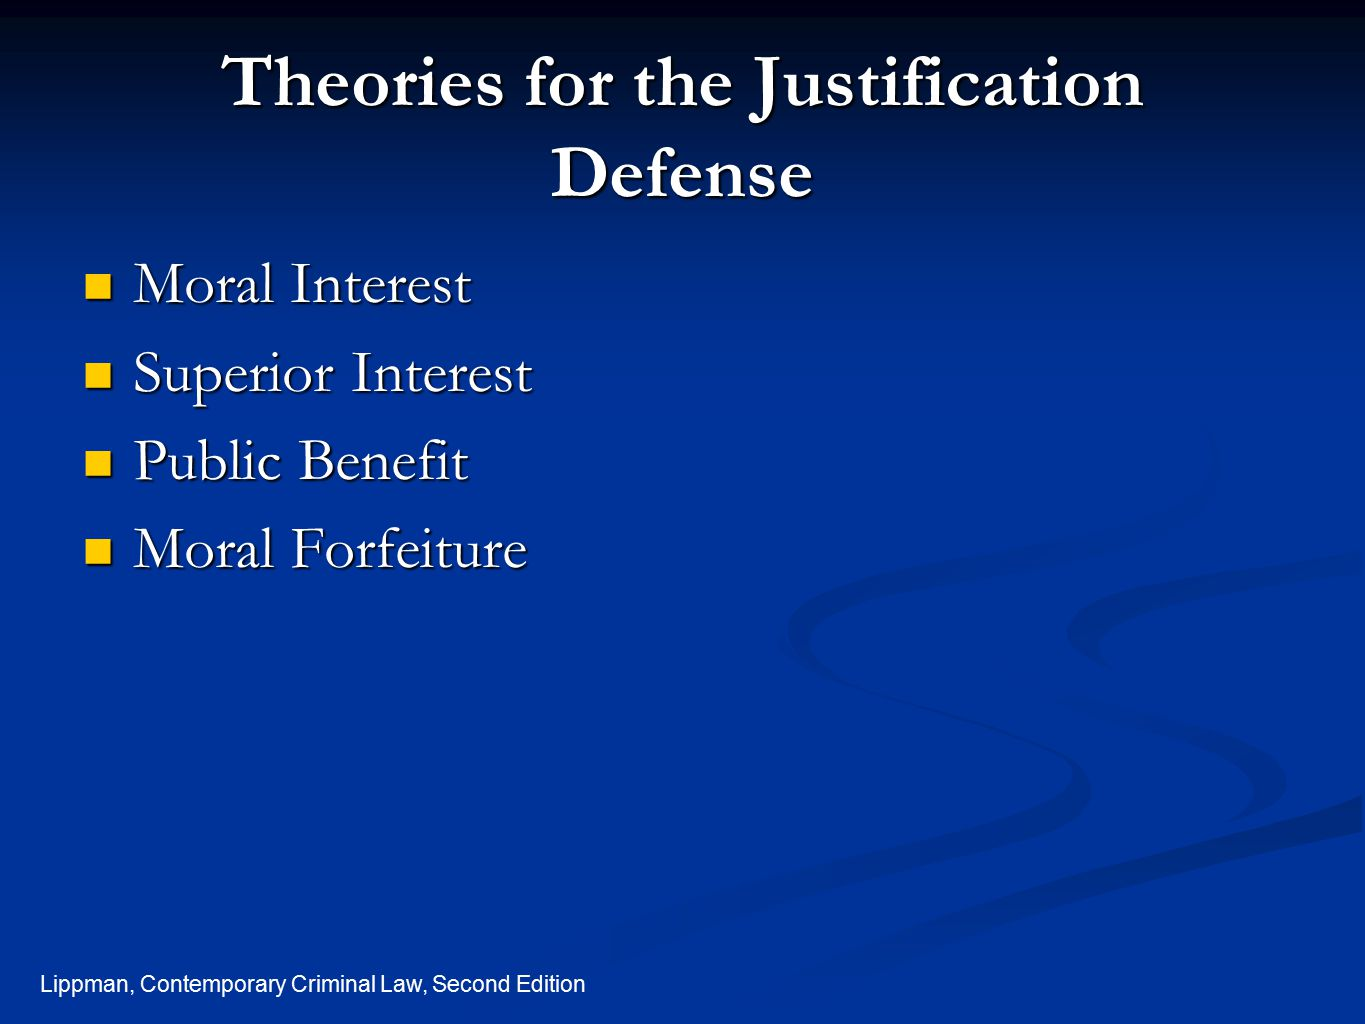 Theories for the Justification Defense